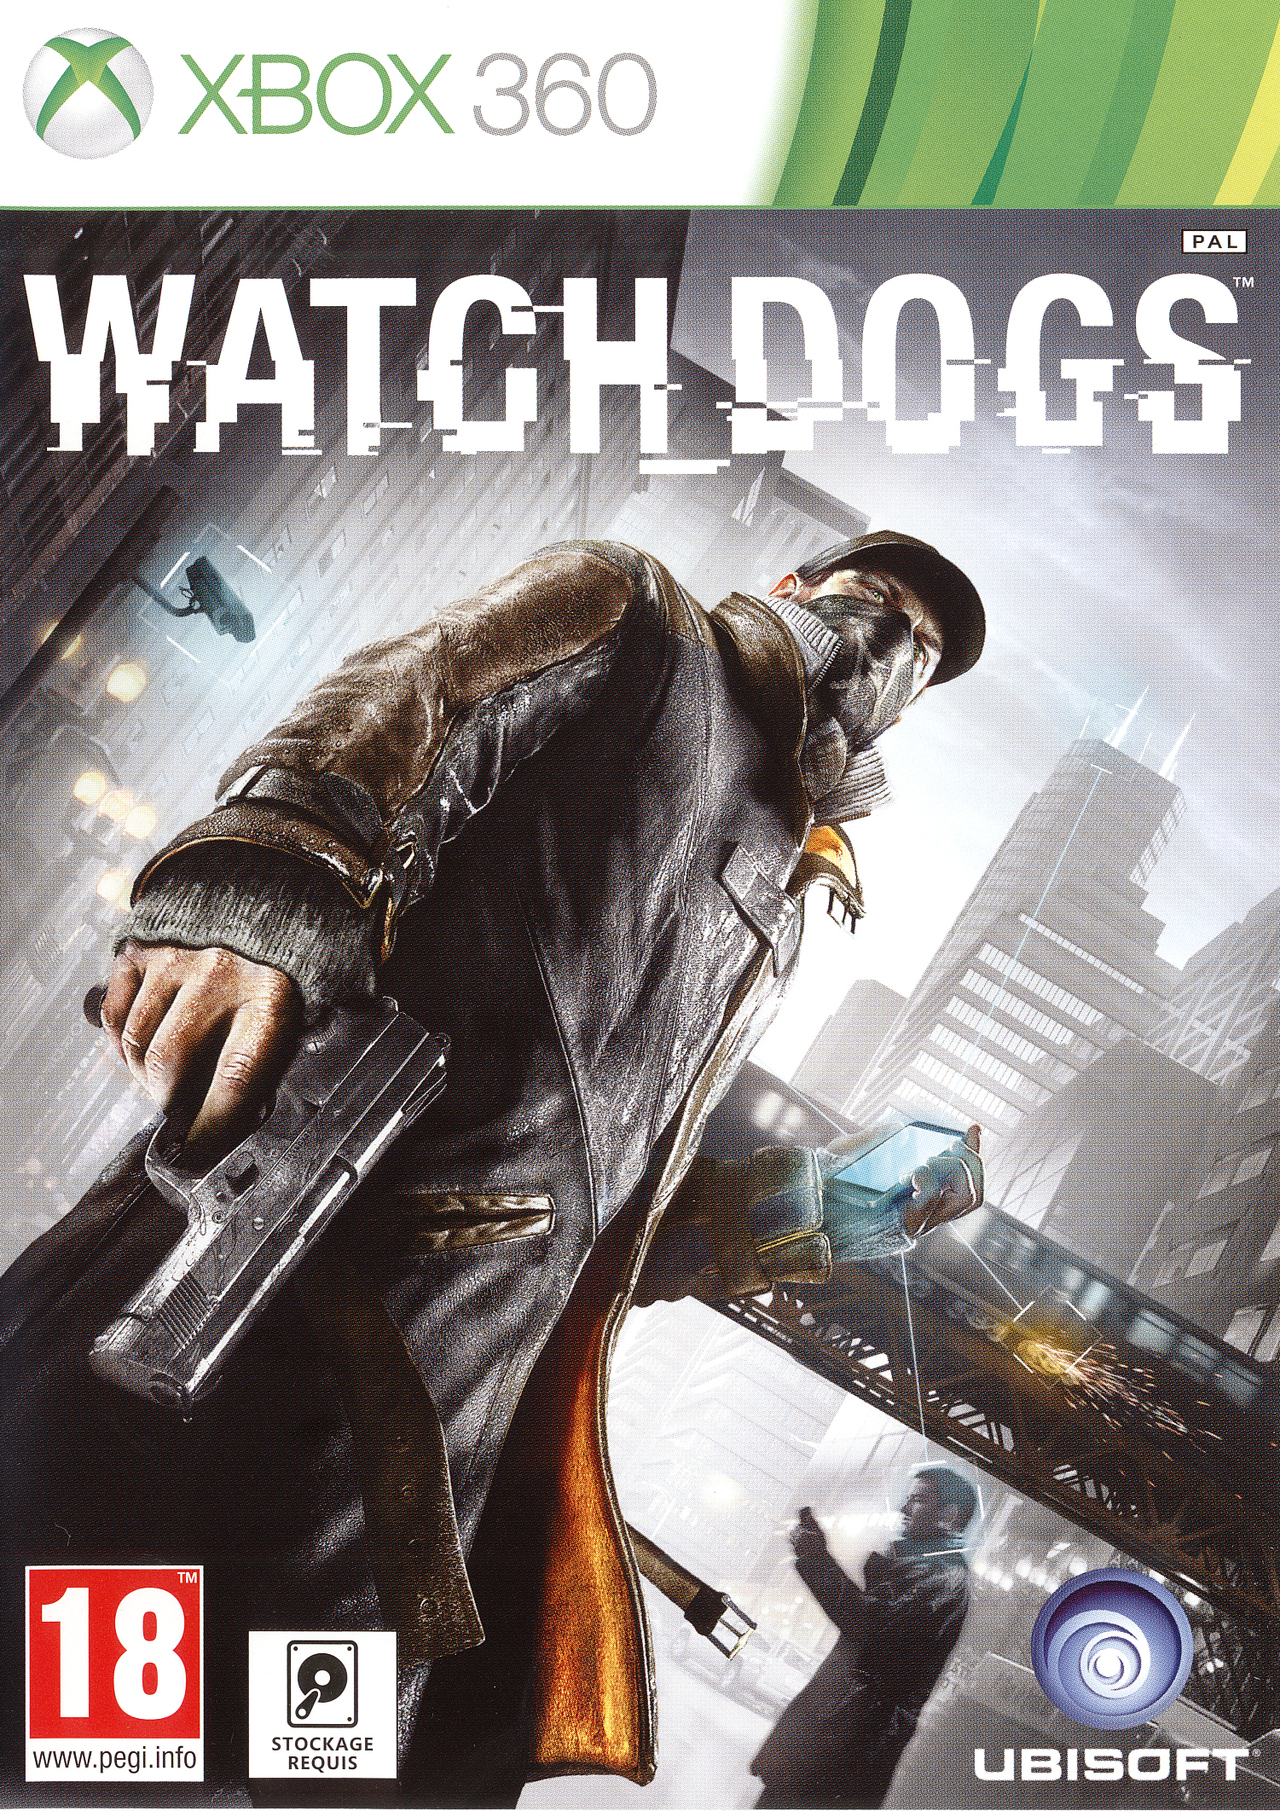 watch dogs sur xbox 360. Black Bedroom Furniture Sets. Home Design Ideas